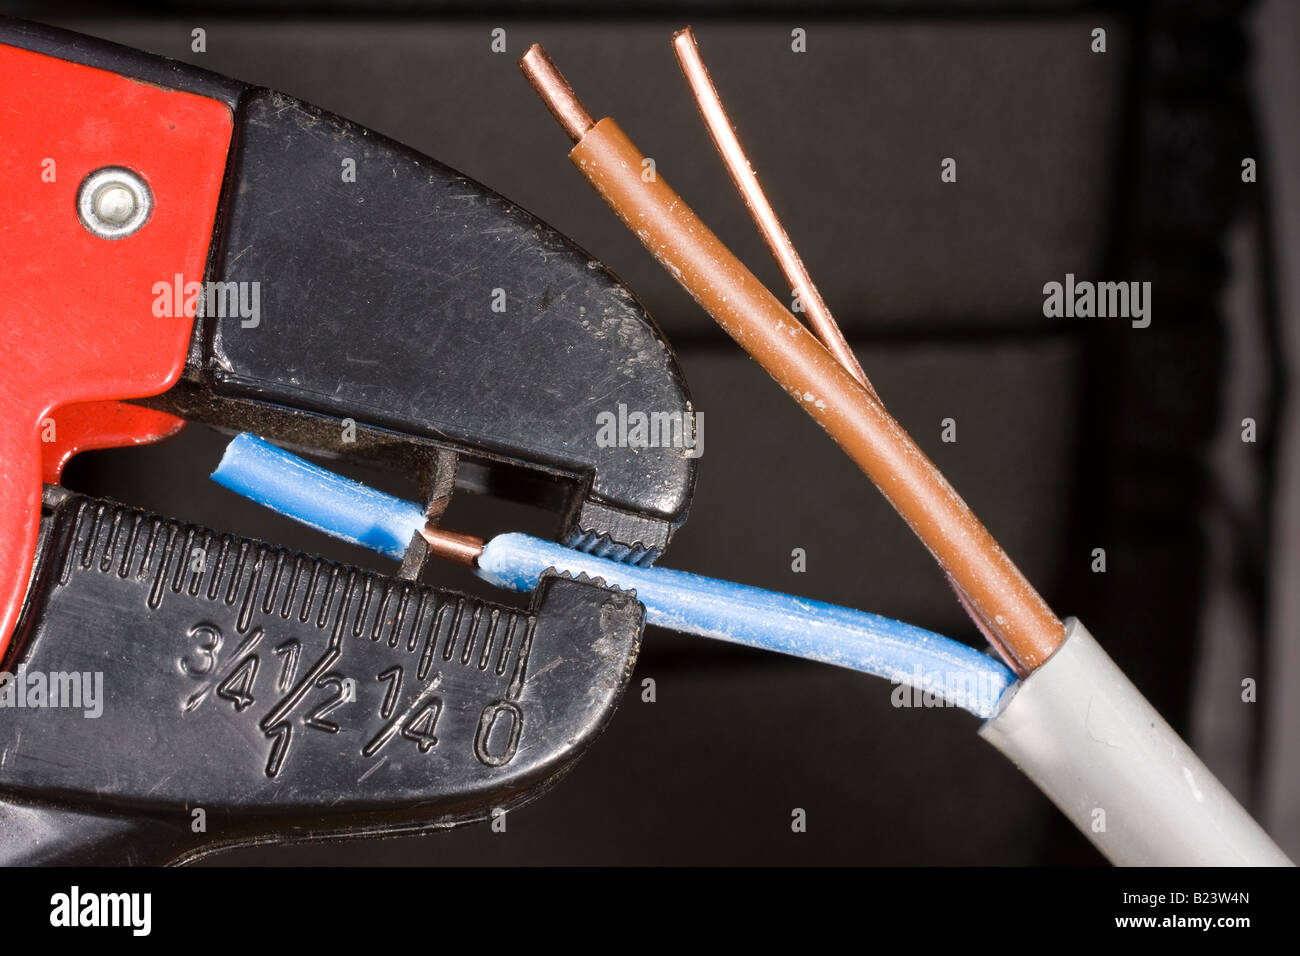 Copper Cable Used In Electrical Stockfotos & Copper Cable Used In ...